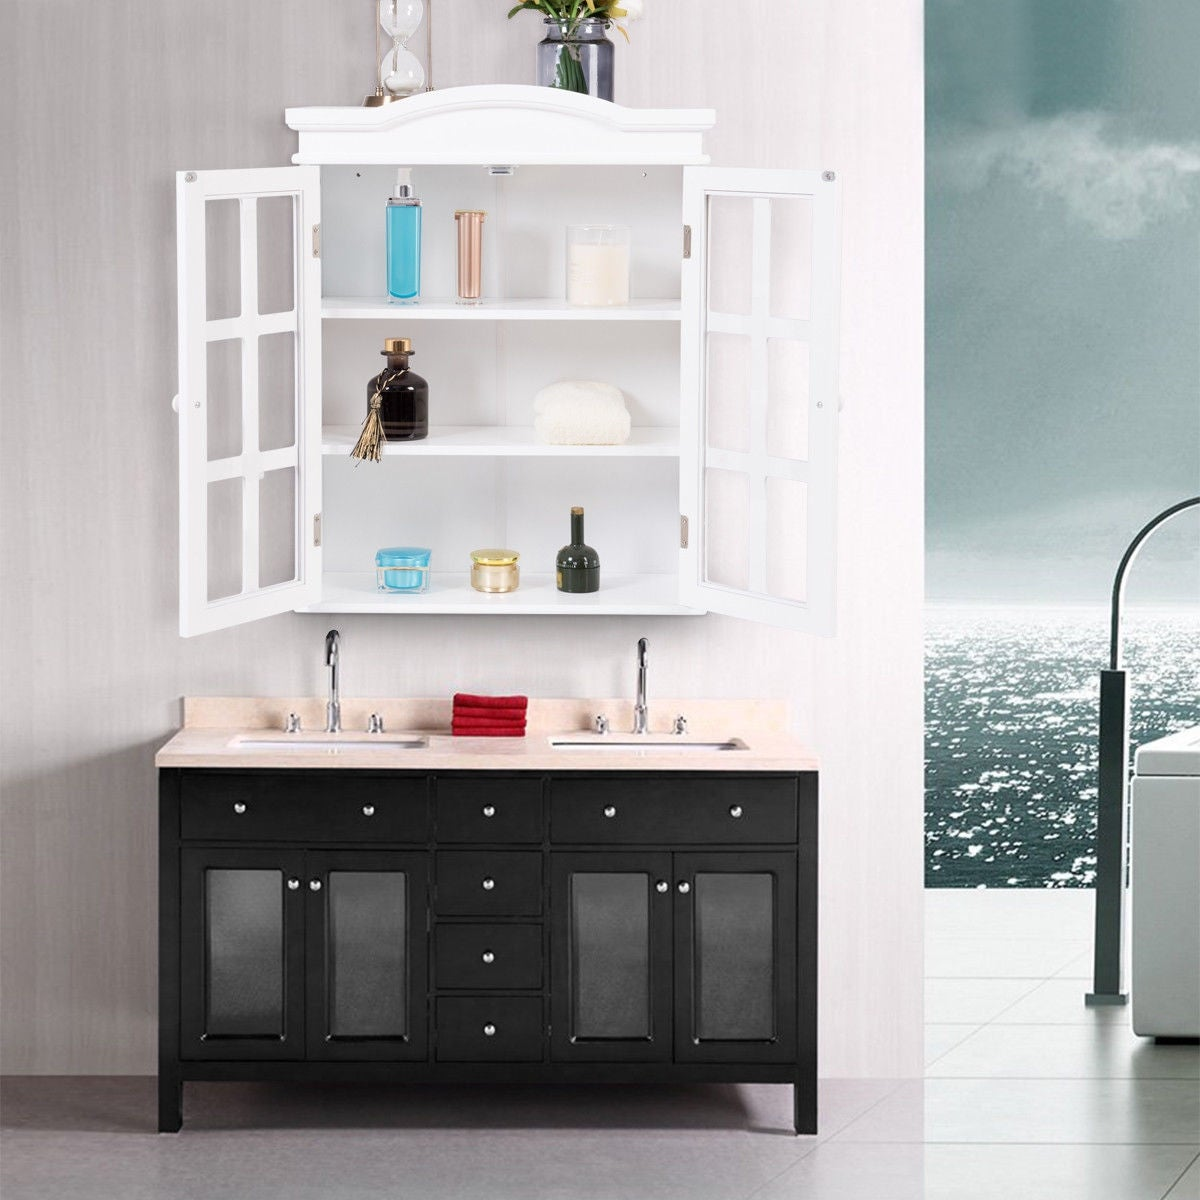 Shop Costway Wall-Mount Bathroom Storage Cabinet Medicine Organizer Double Doors Shelved - White - Free Shipping Today - Overstock.com - 20708459